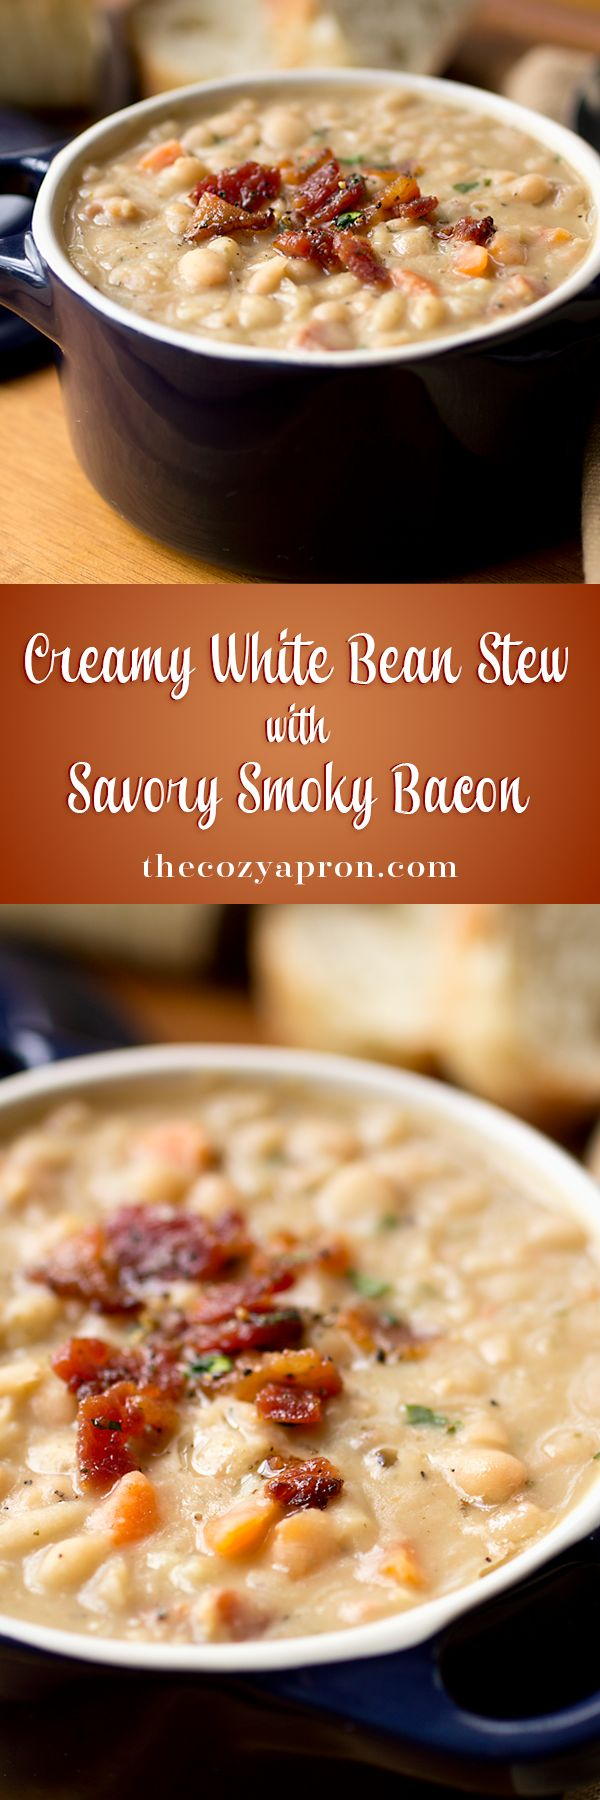 Creamy White Bean Stew with Savory Smoky Bacon